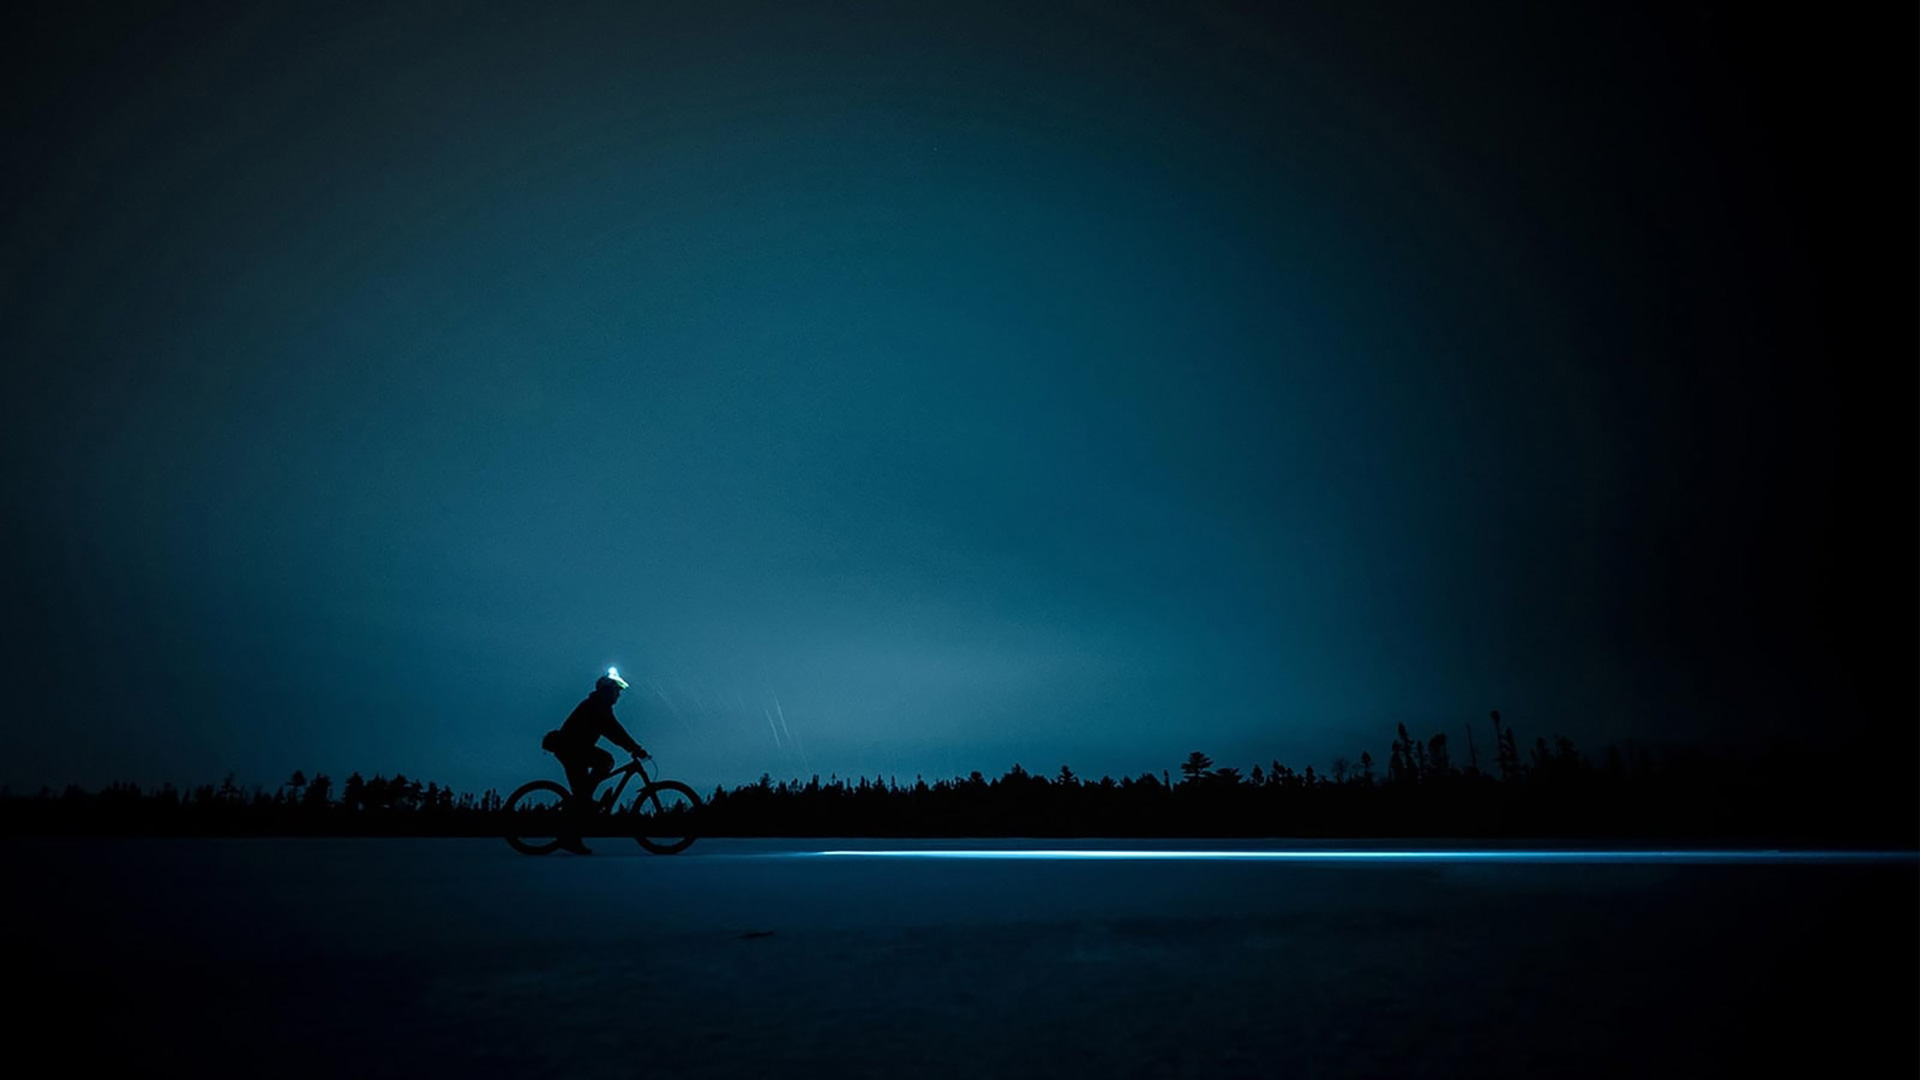 A man is riding a bike during night